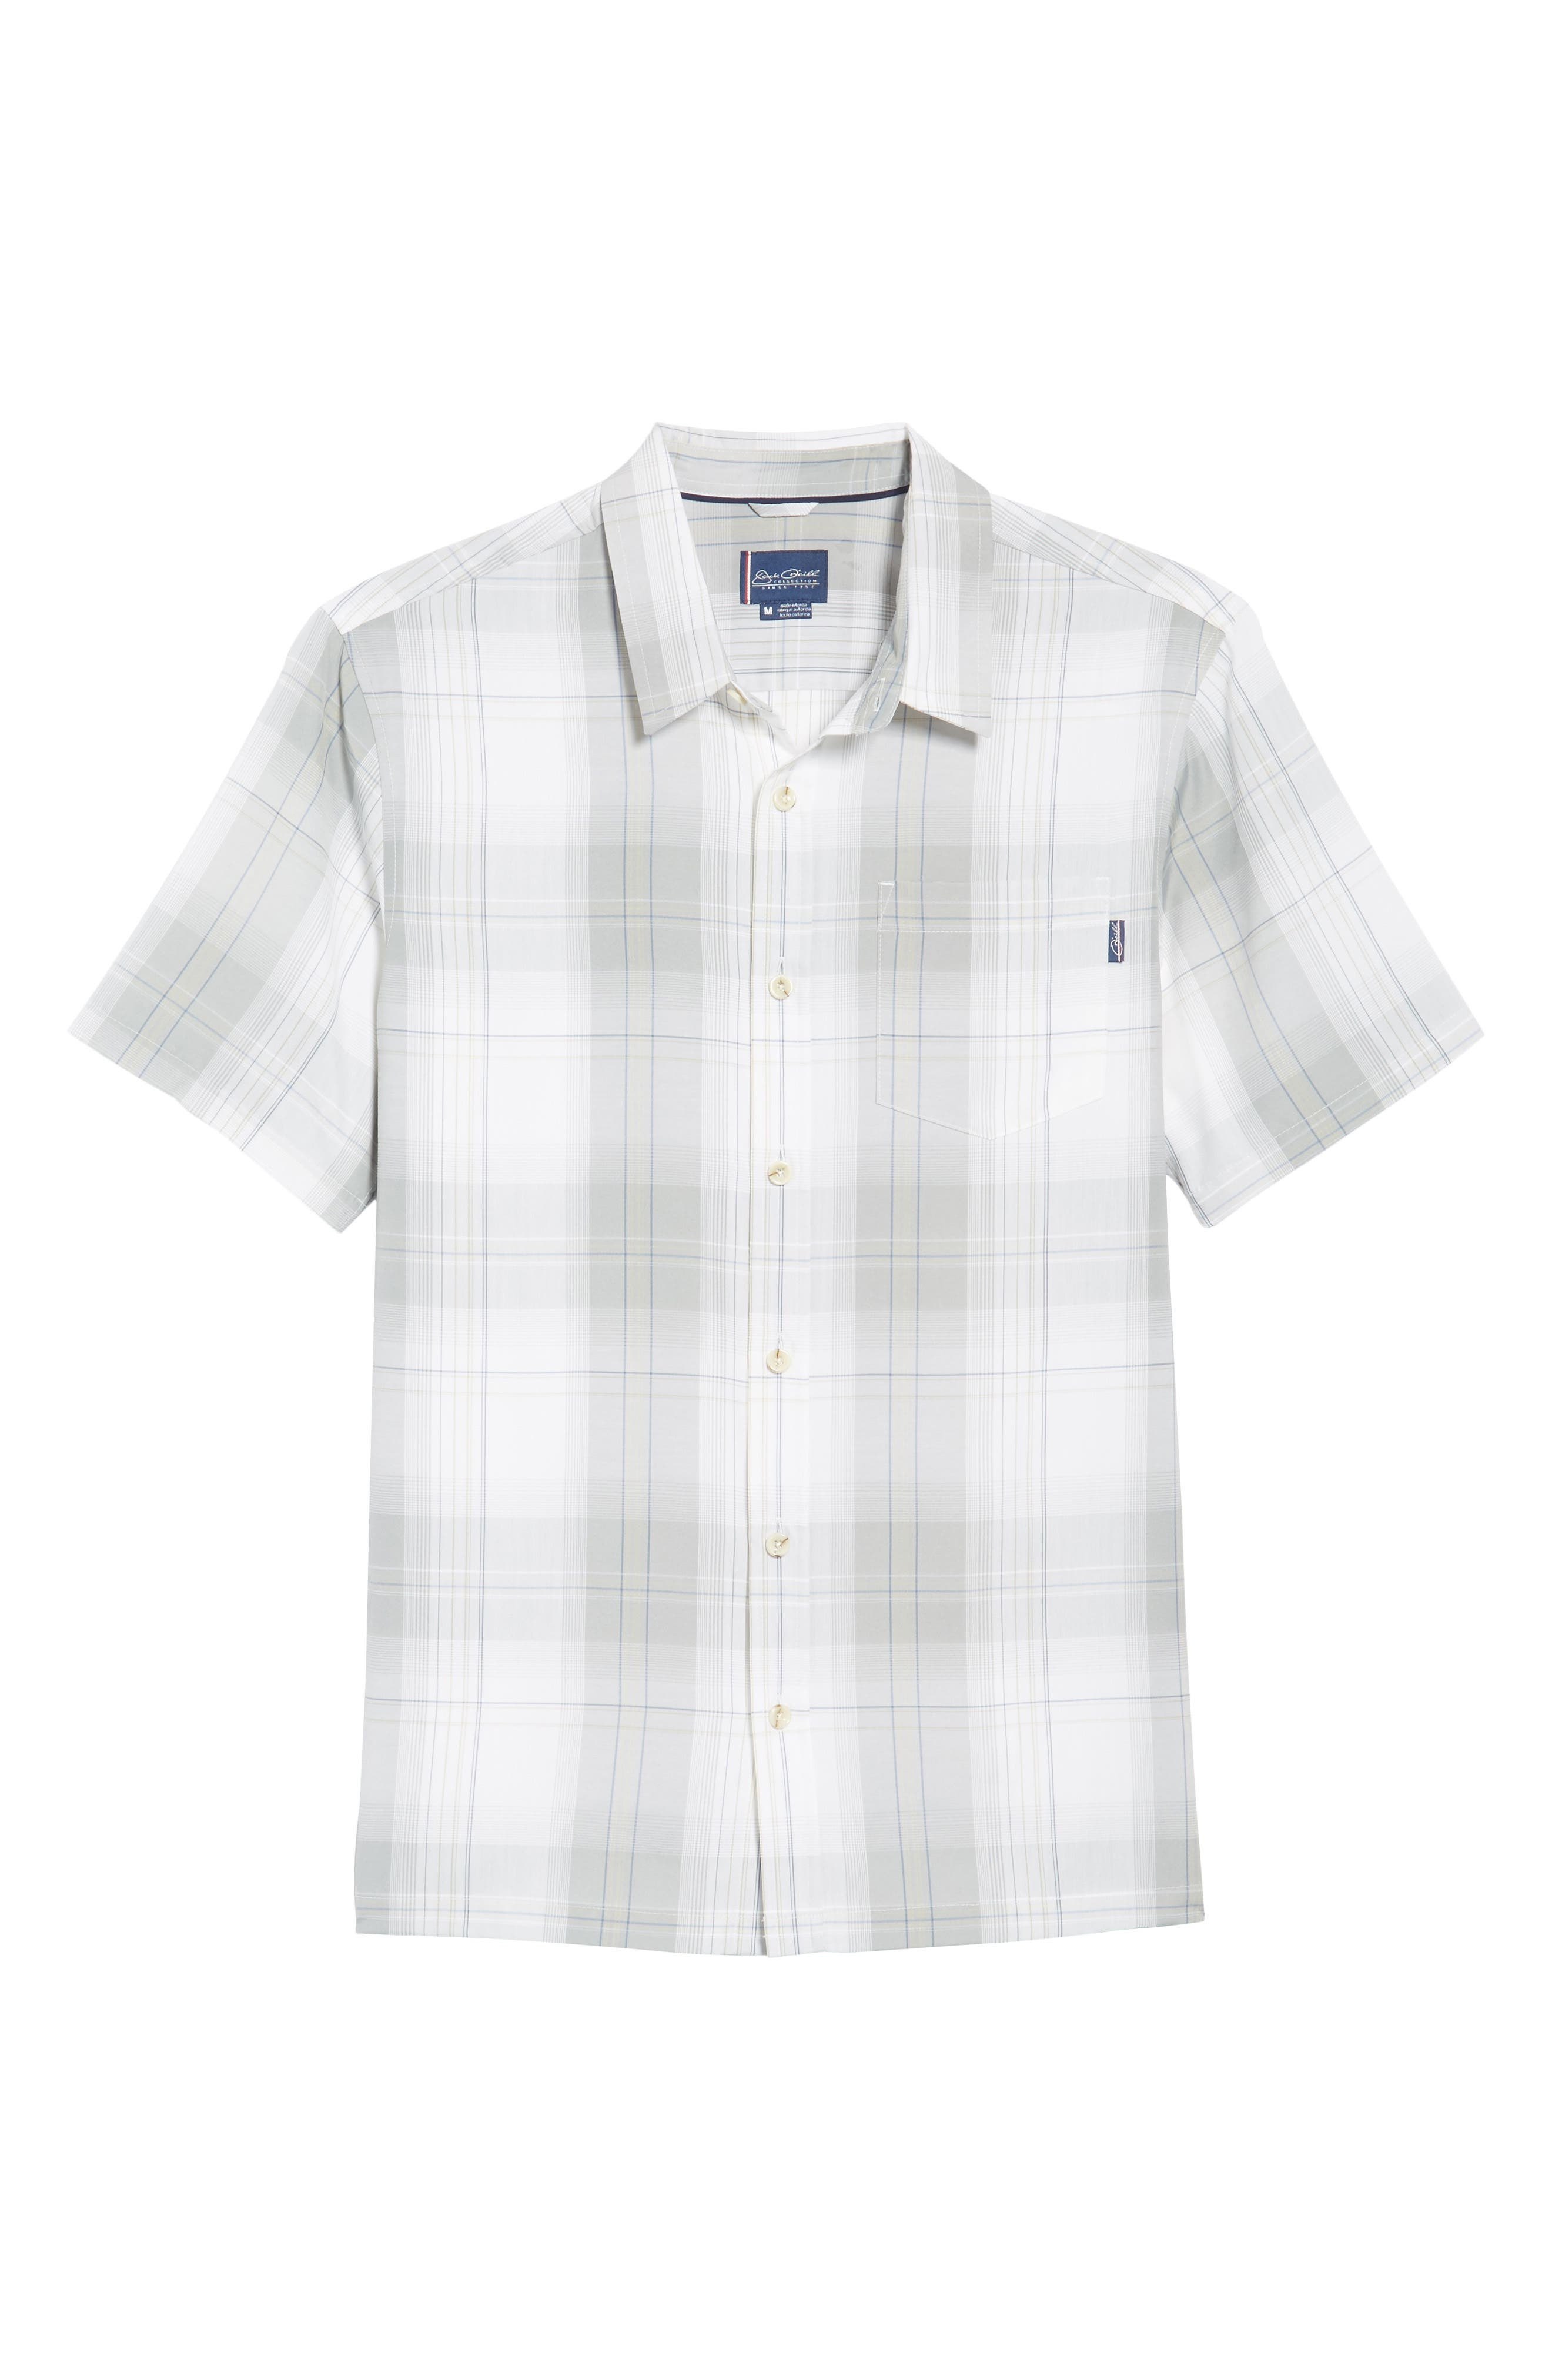 Outerbanks Plaid Sport Shirt,                             Alternate thumbnail 6, color,                             020